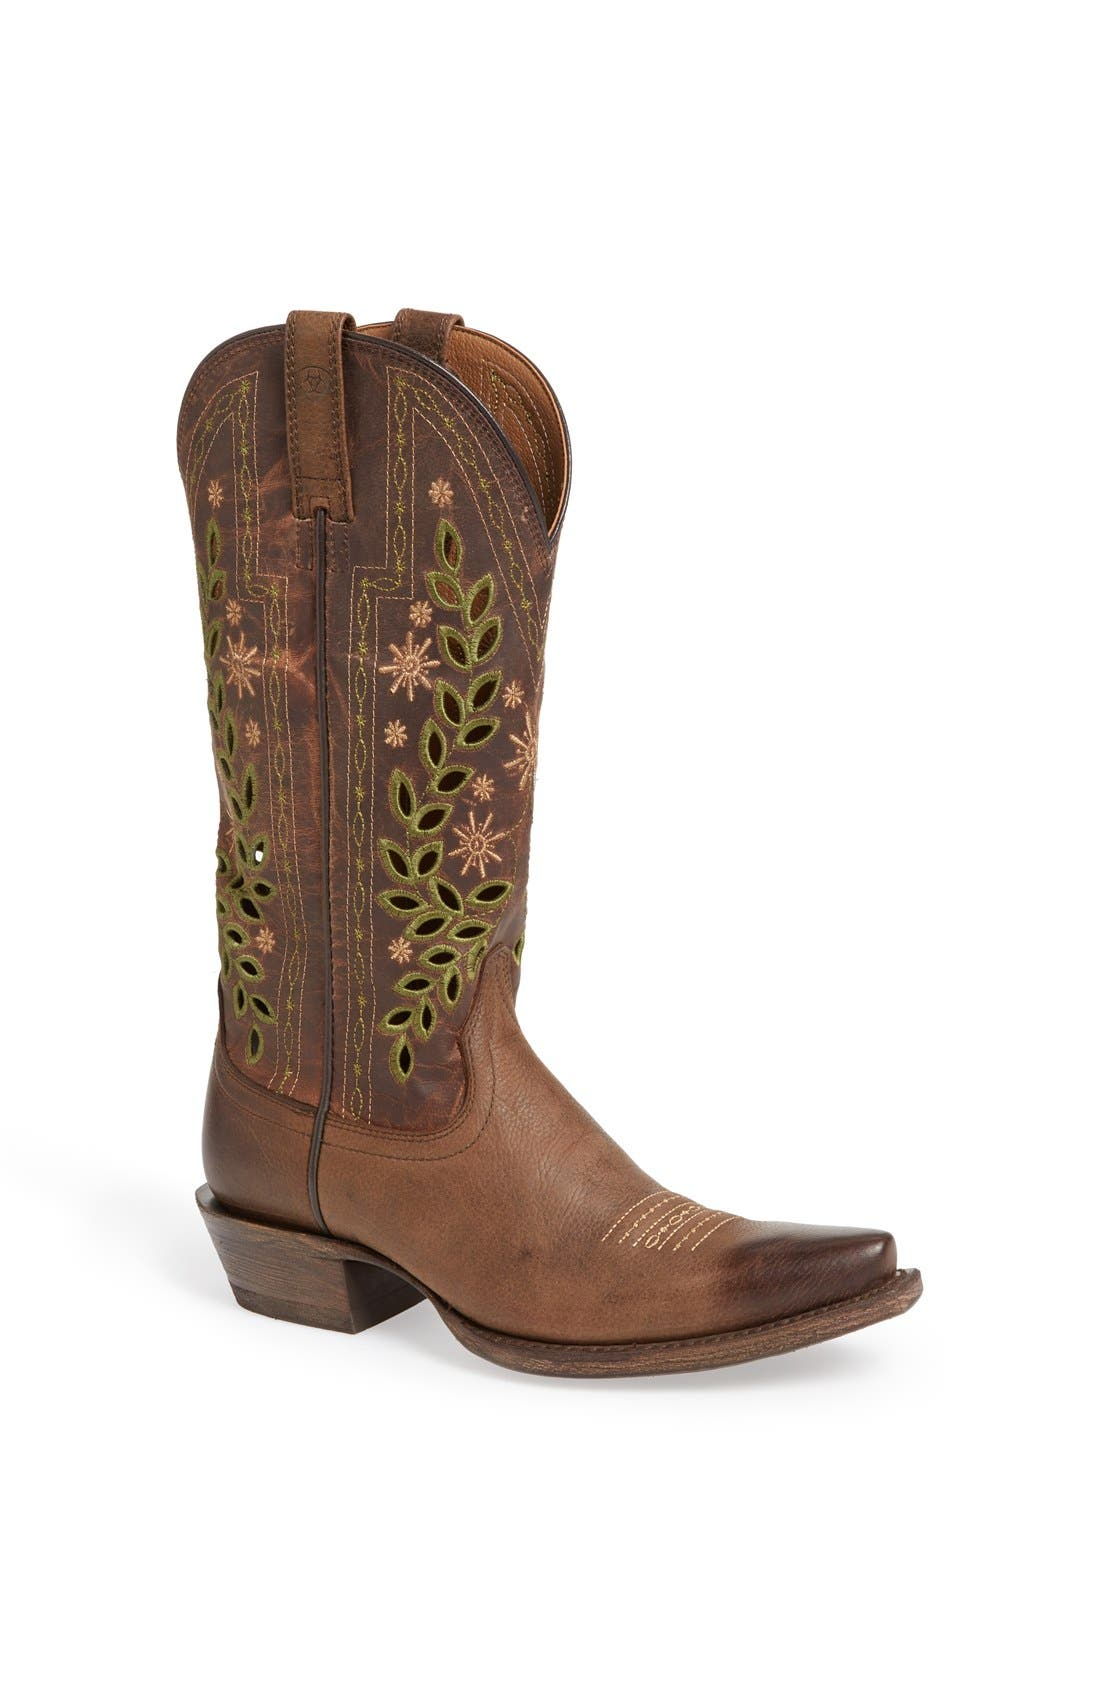 Alternate Image 1 Selected - Ariat 'Arrosa' Embroidered Cutout Western Pointed Toe Boot